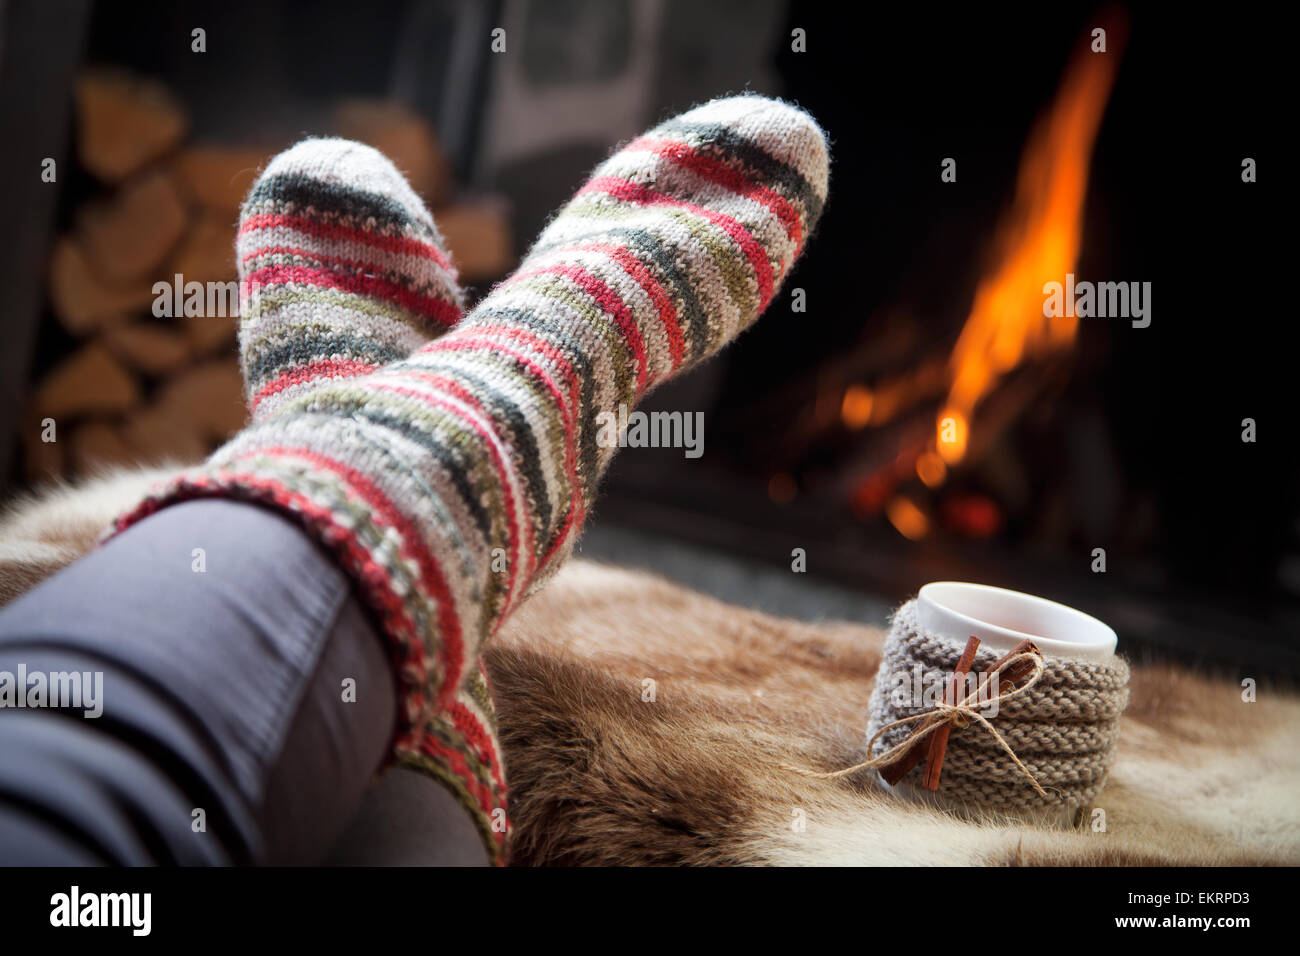 Warming up by the fireplace - Stock Image